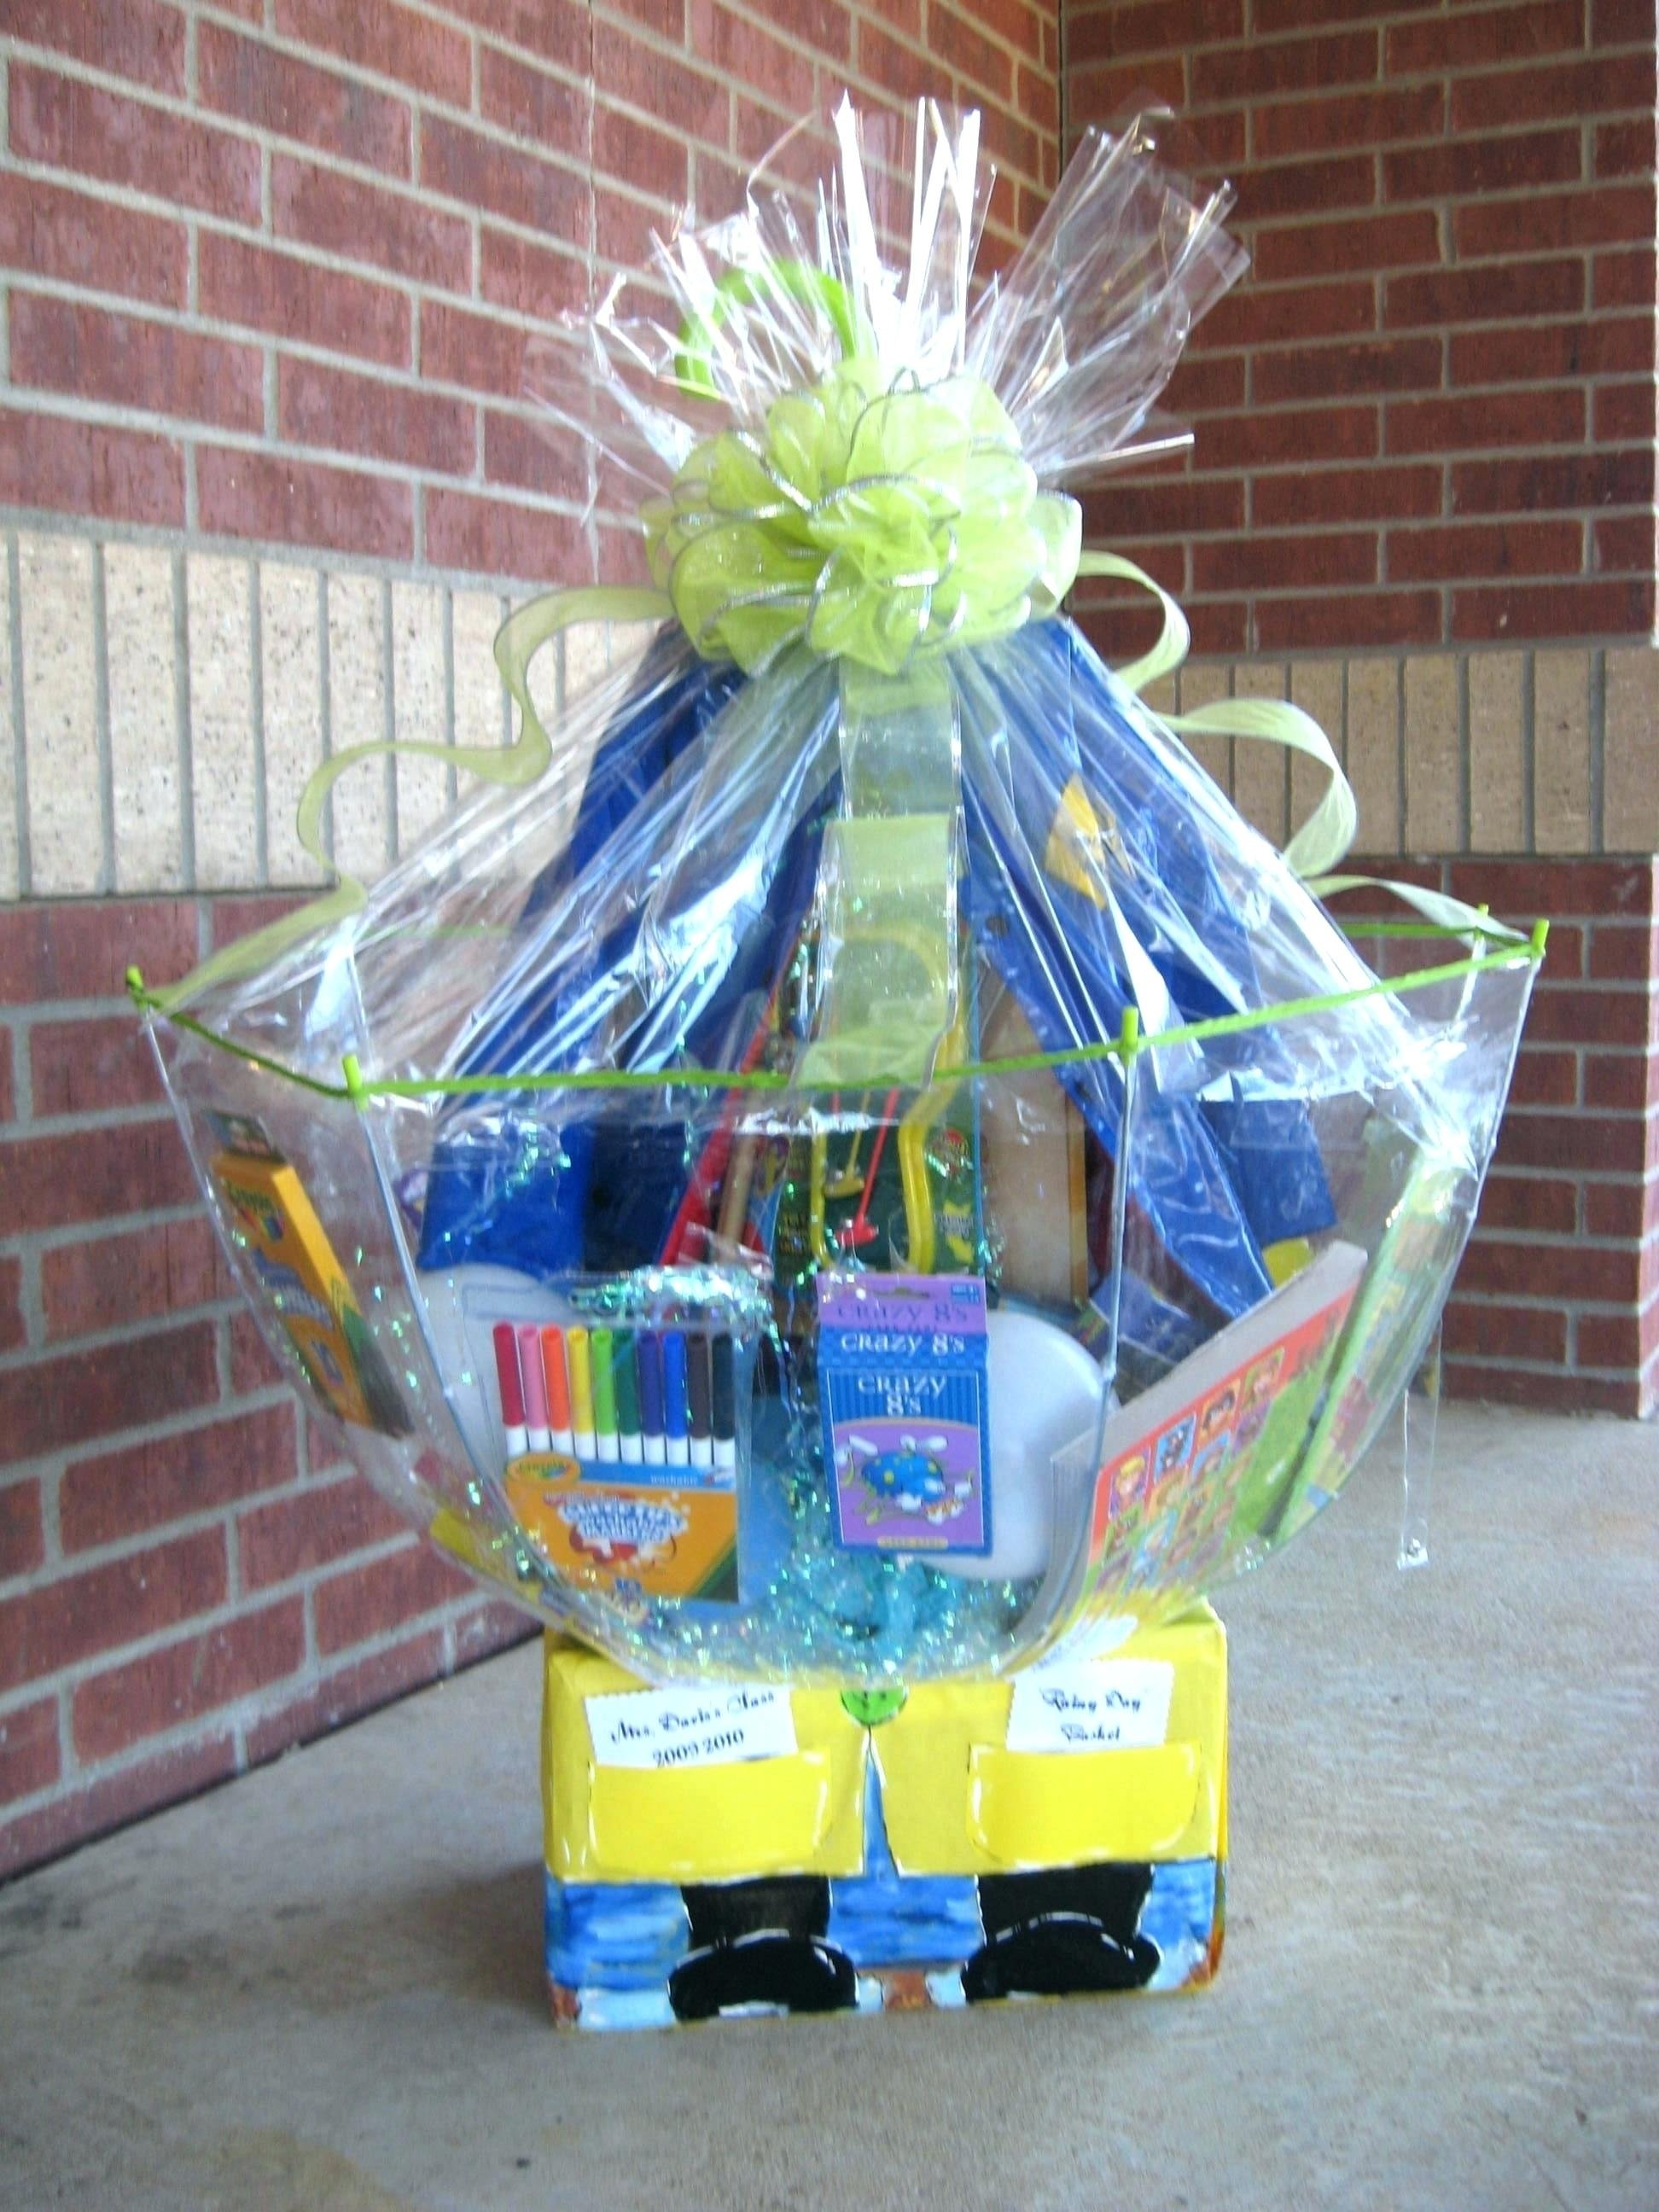 BestHolidayDeals.CO & Gift Baskets For Silent Auction - BestHolidayDeals.CO